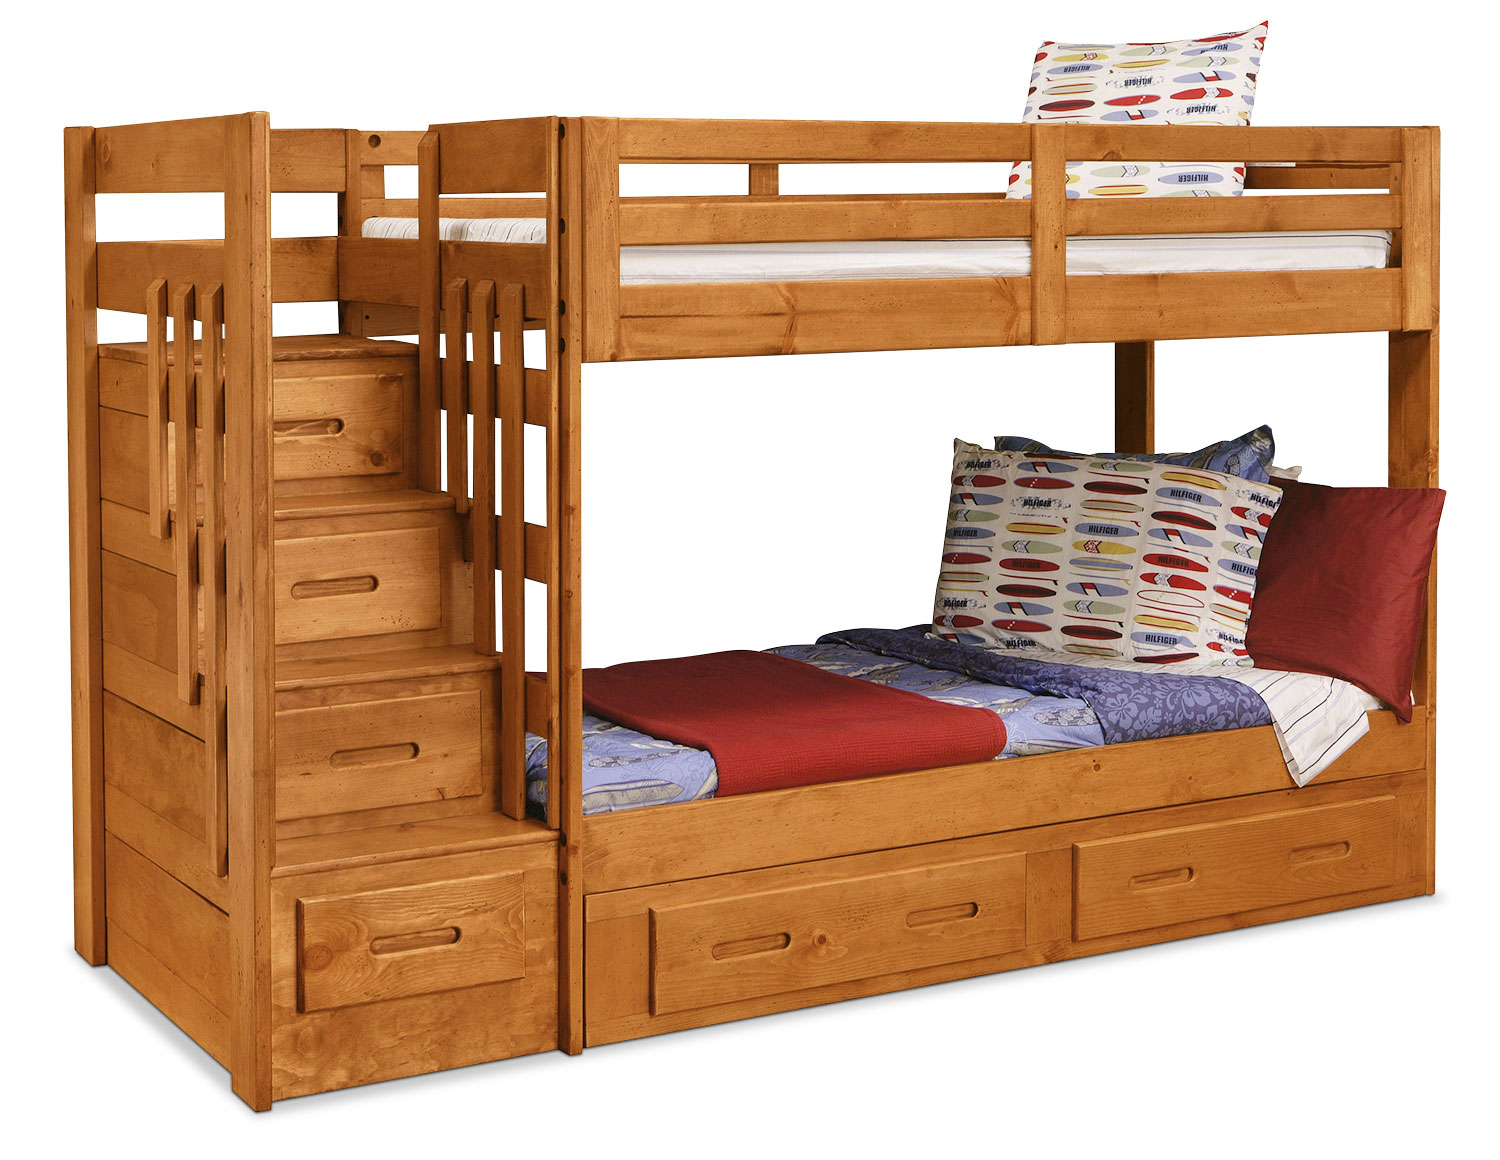 Kids Furniture - Ponderosa Staircase Bunk Bed